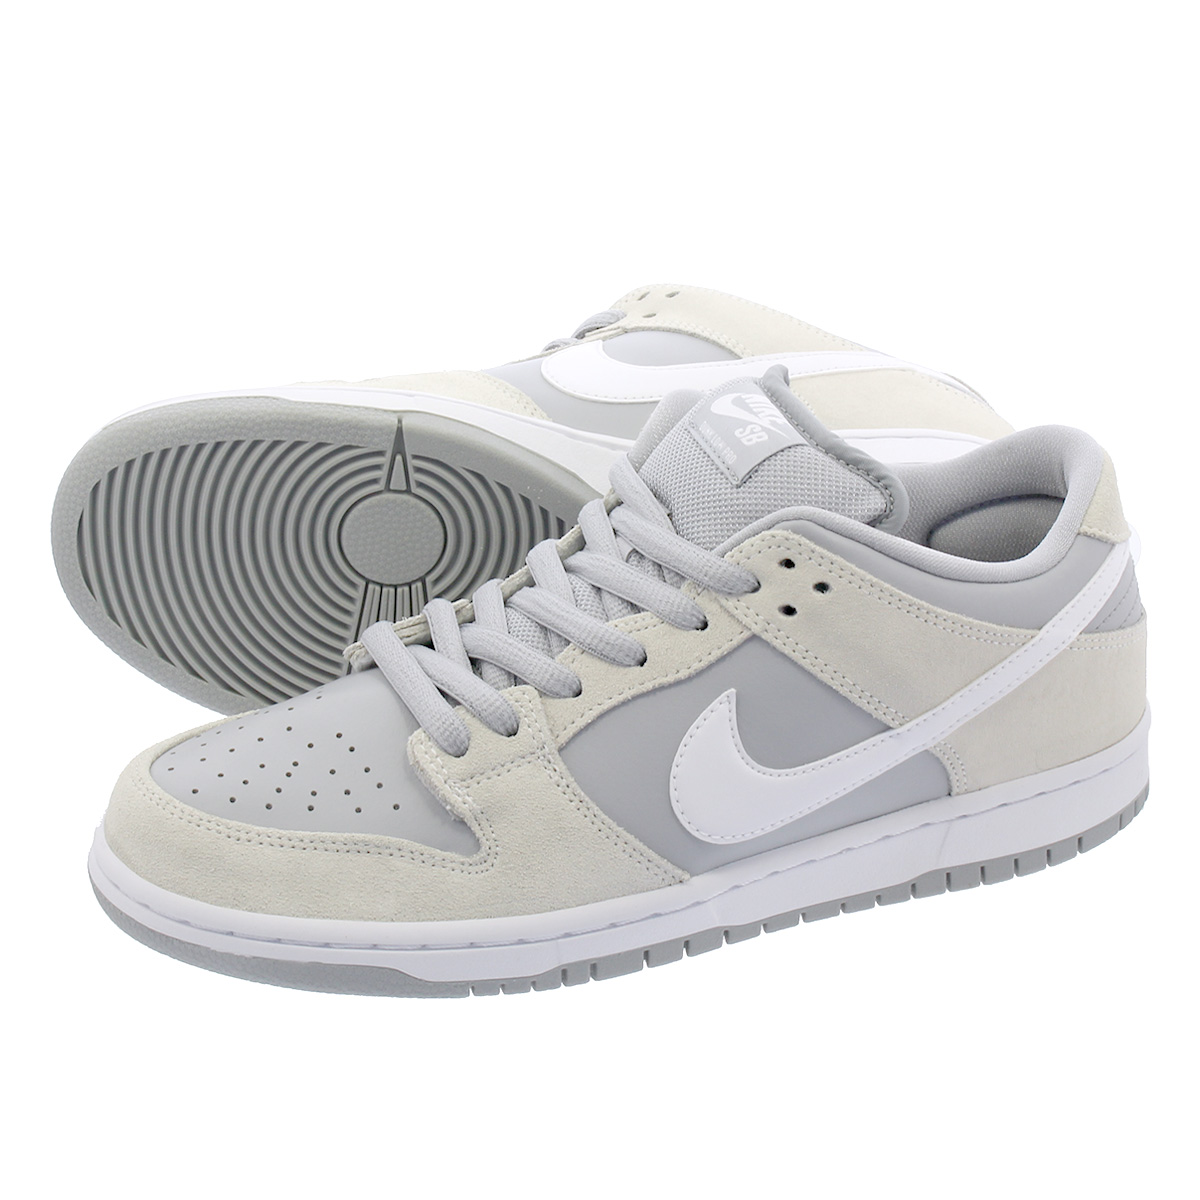 best sneakers 6ea2f 5007d NIKE SB DUNK LOW TRD Nike SB dunk low TRD SUMMIT WHITE WHITE WOLF GREY  ar0778-110